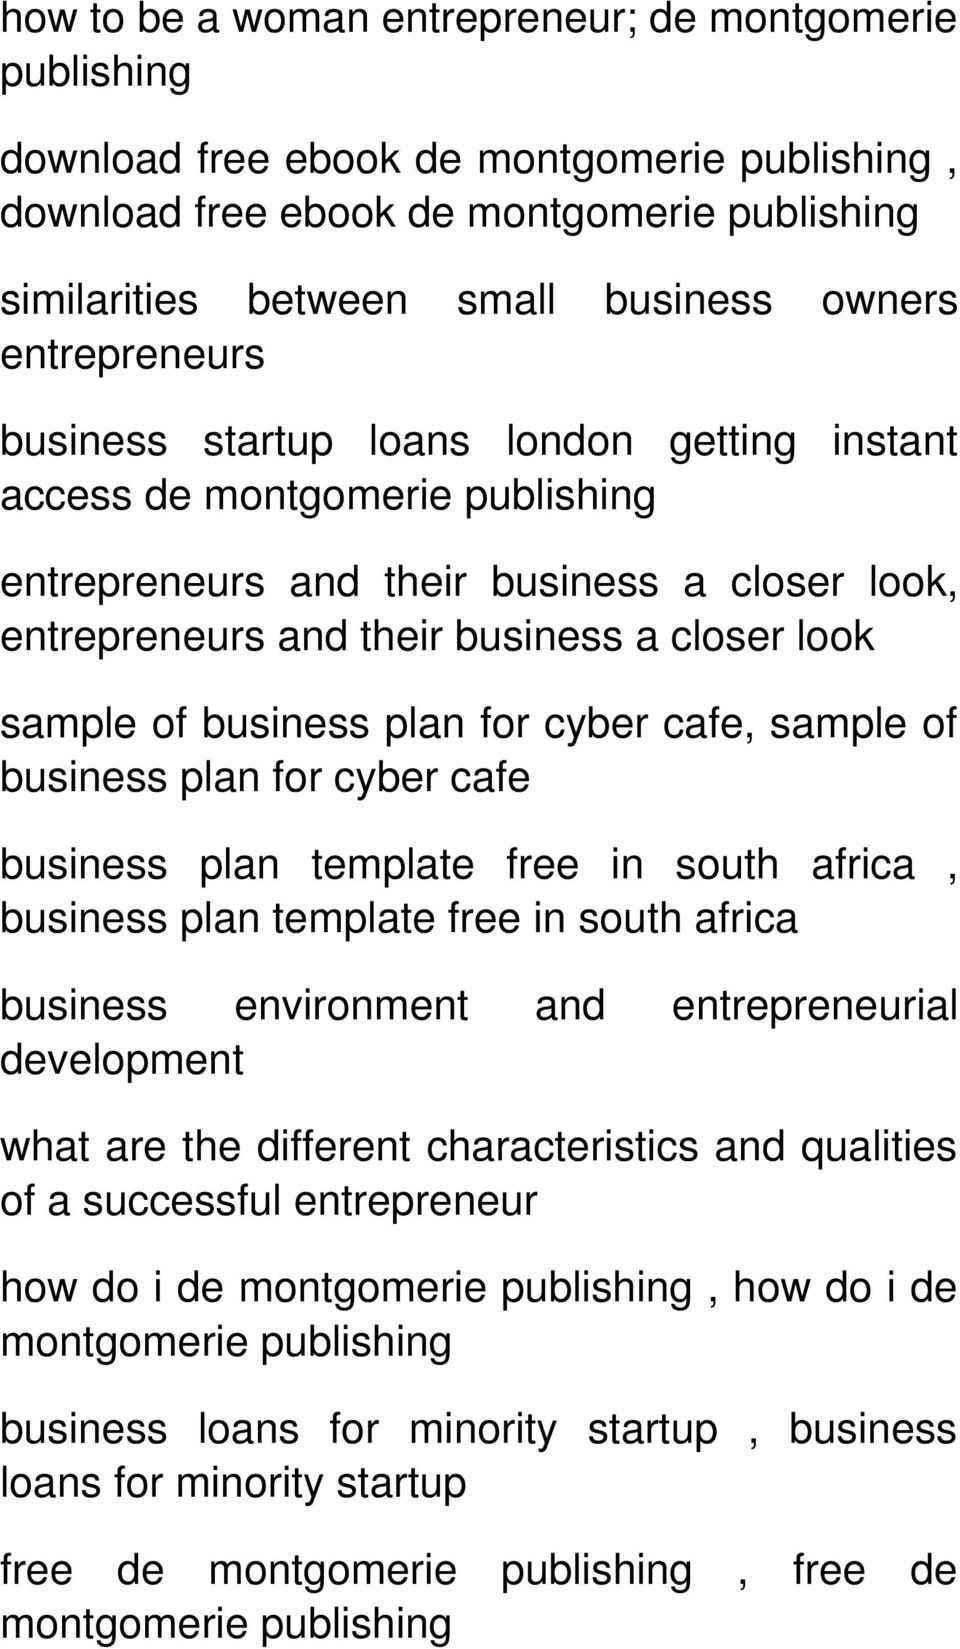 Sample business plan for cyber cafe